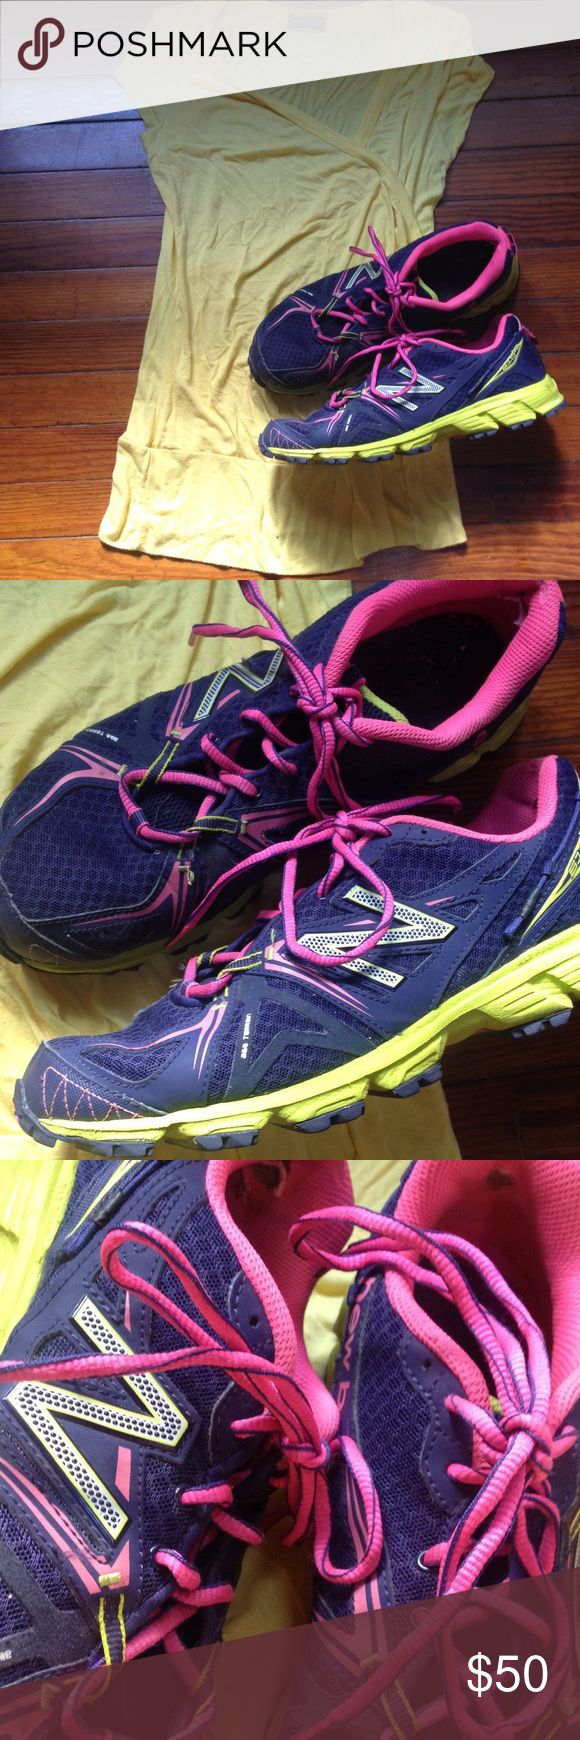 All Terrain New Balance athletic sneakers size 11 All terrain New Balance athletic sneakers size 11 purple pink neon green perfect stability and comfort for working out running walking etc tread is in good shape New Balance Shoes Athletic Shoes